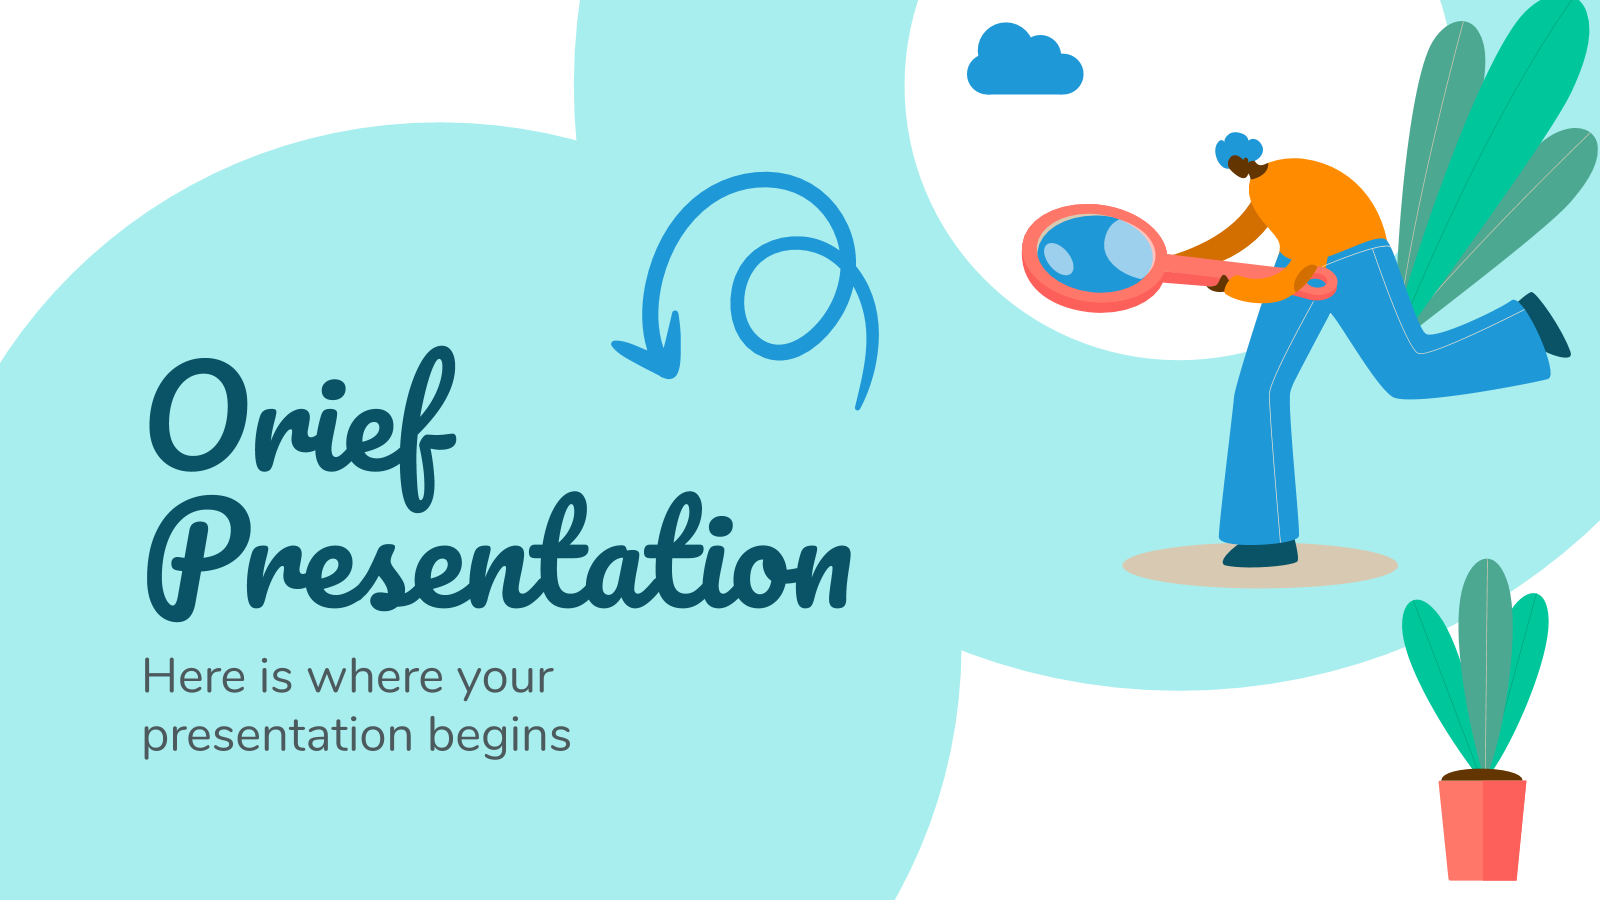 Orief presentation template